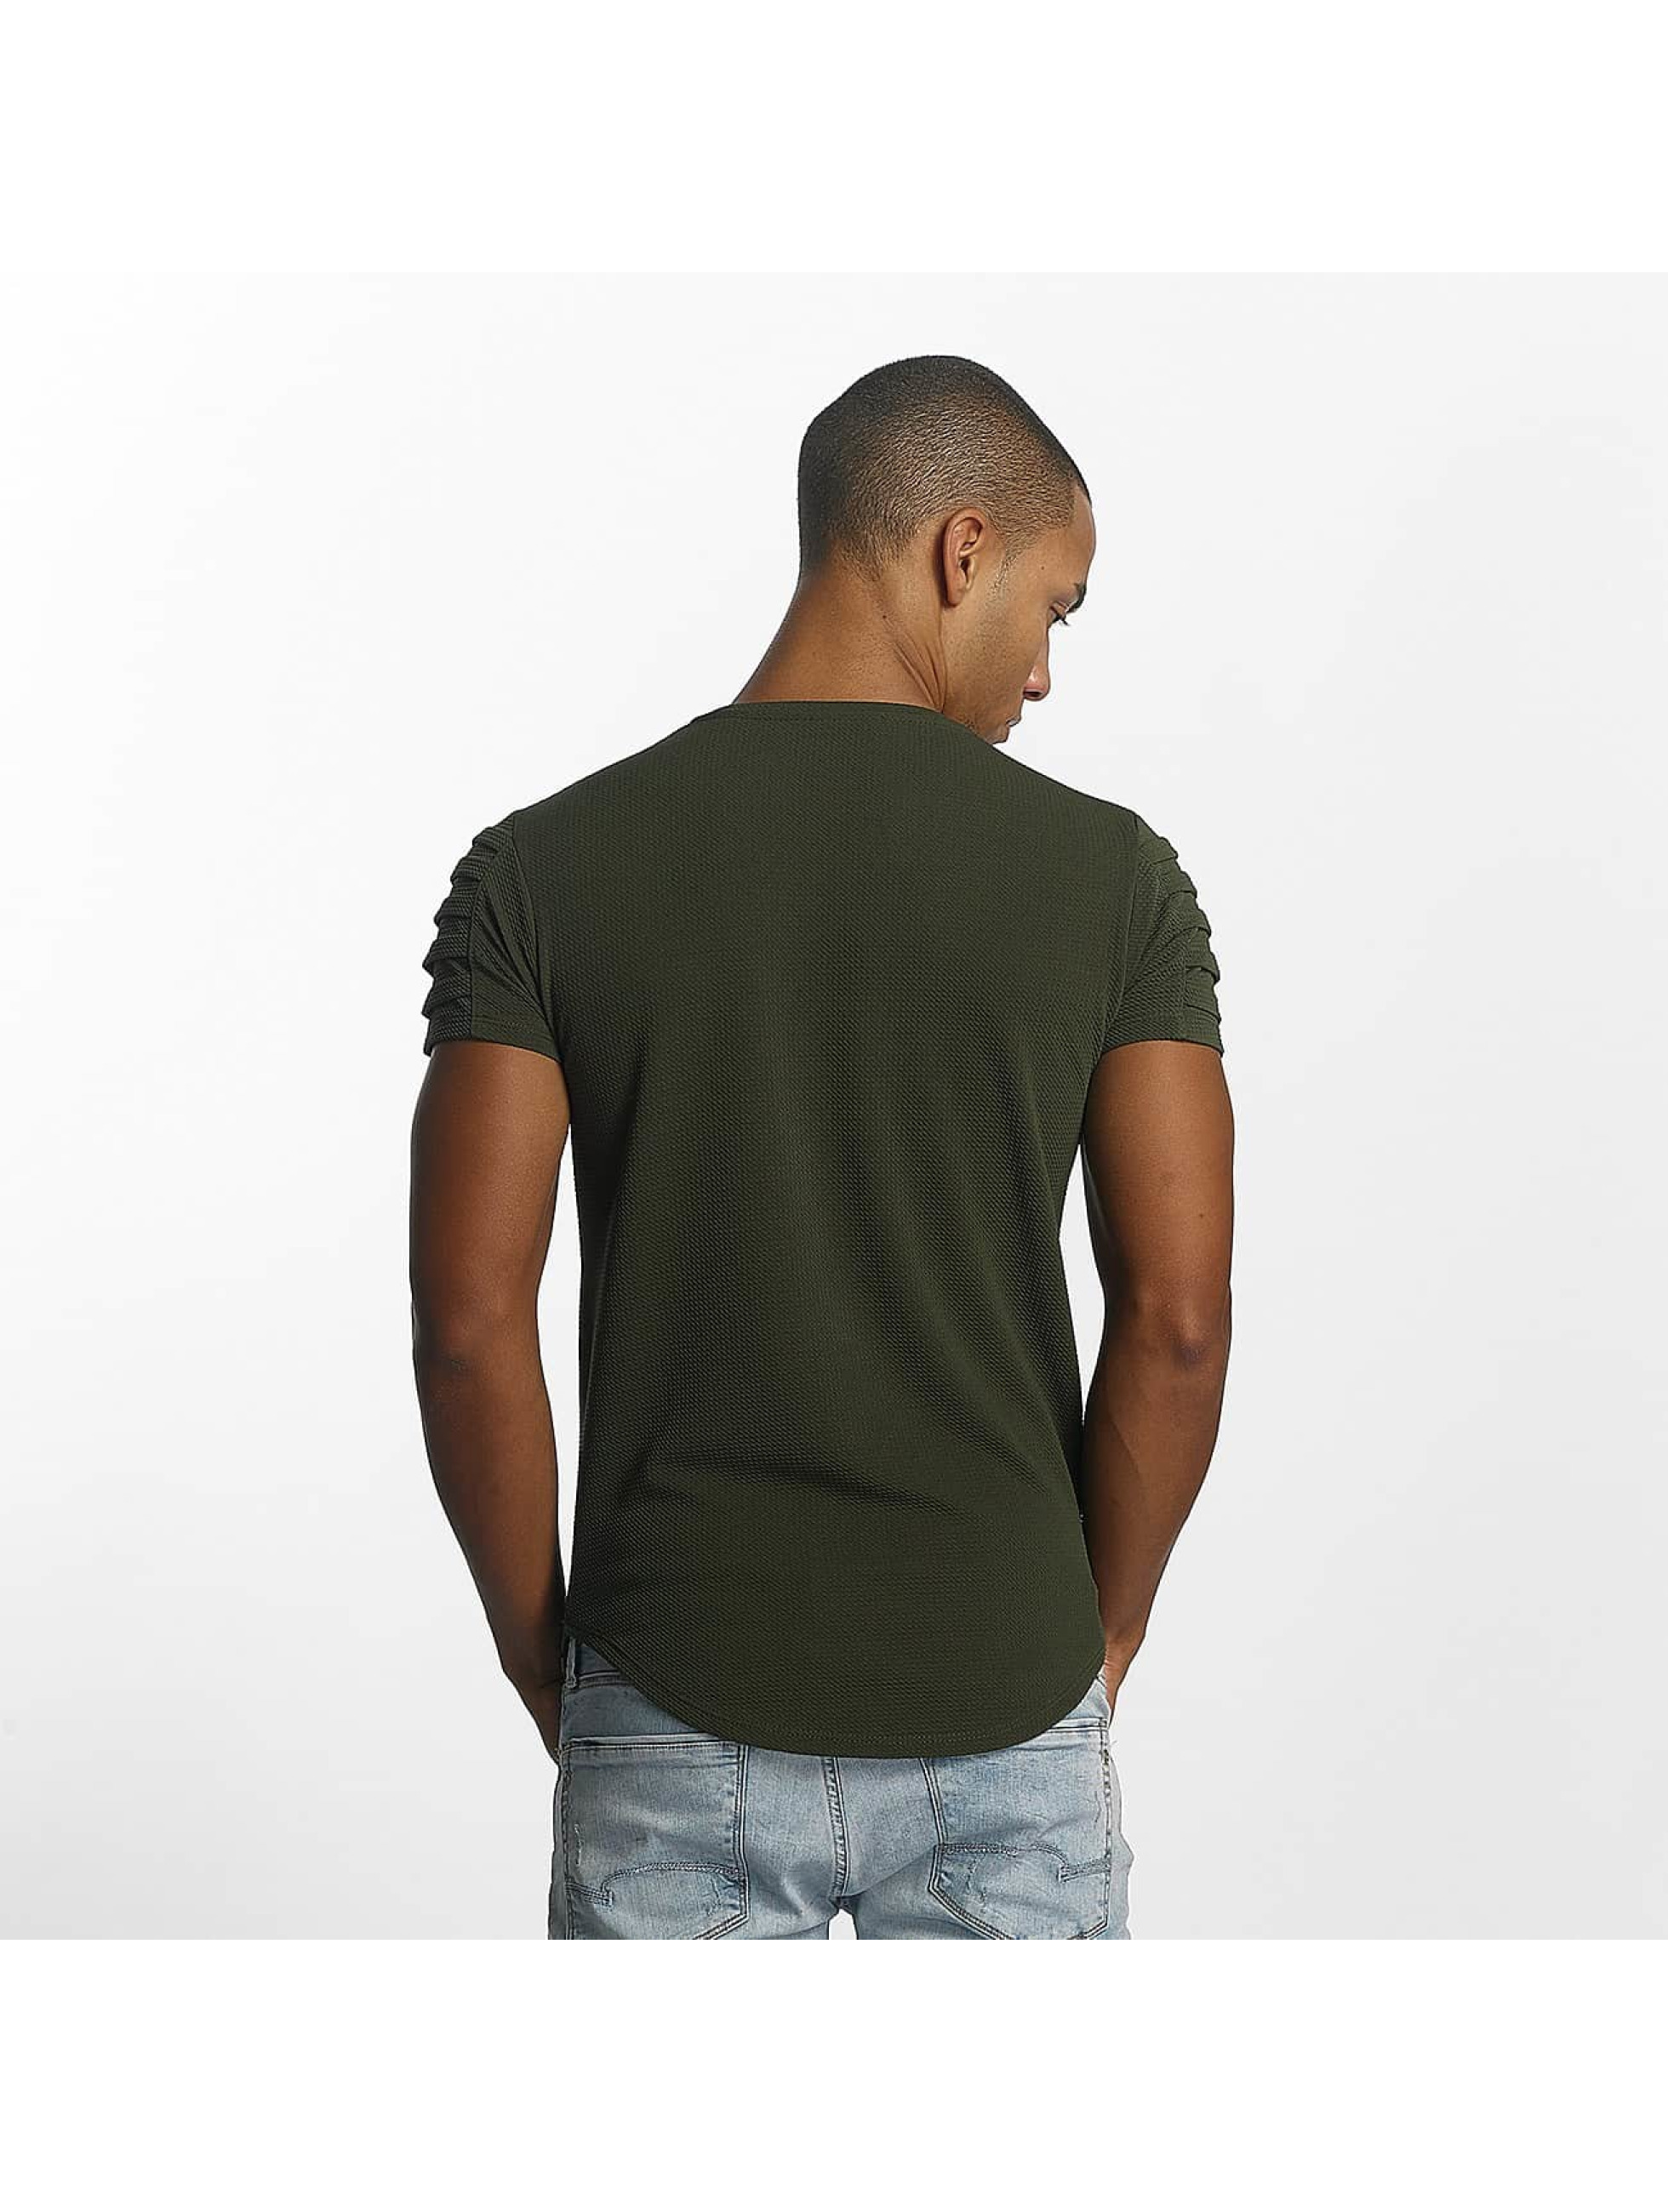 Uniplay t-shirt Embossed khaki